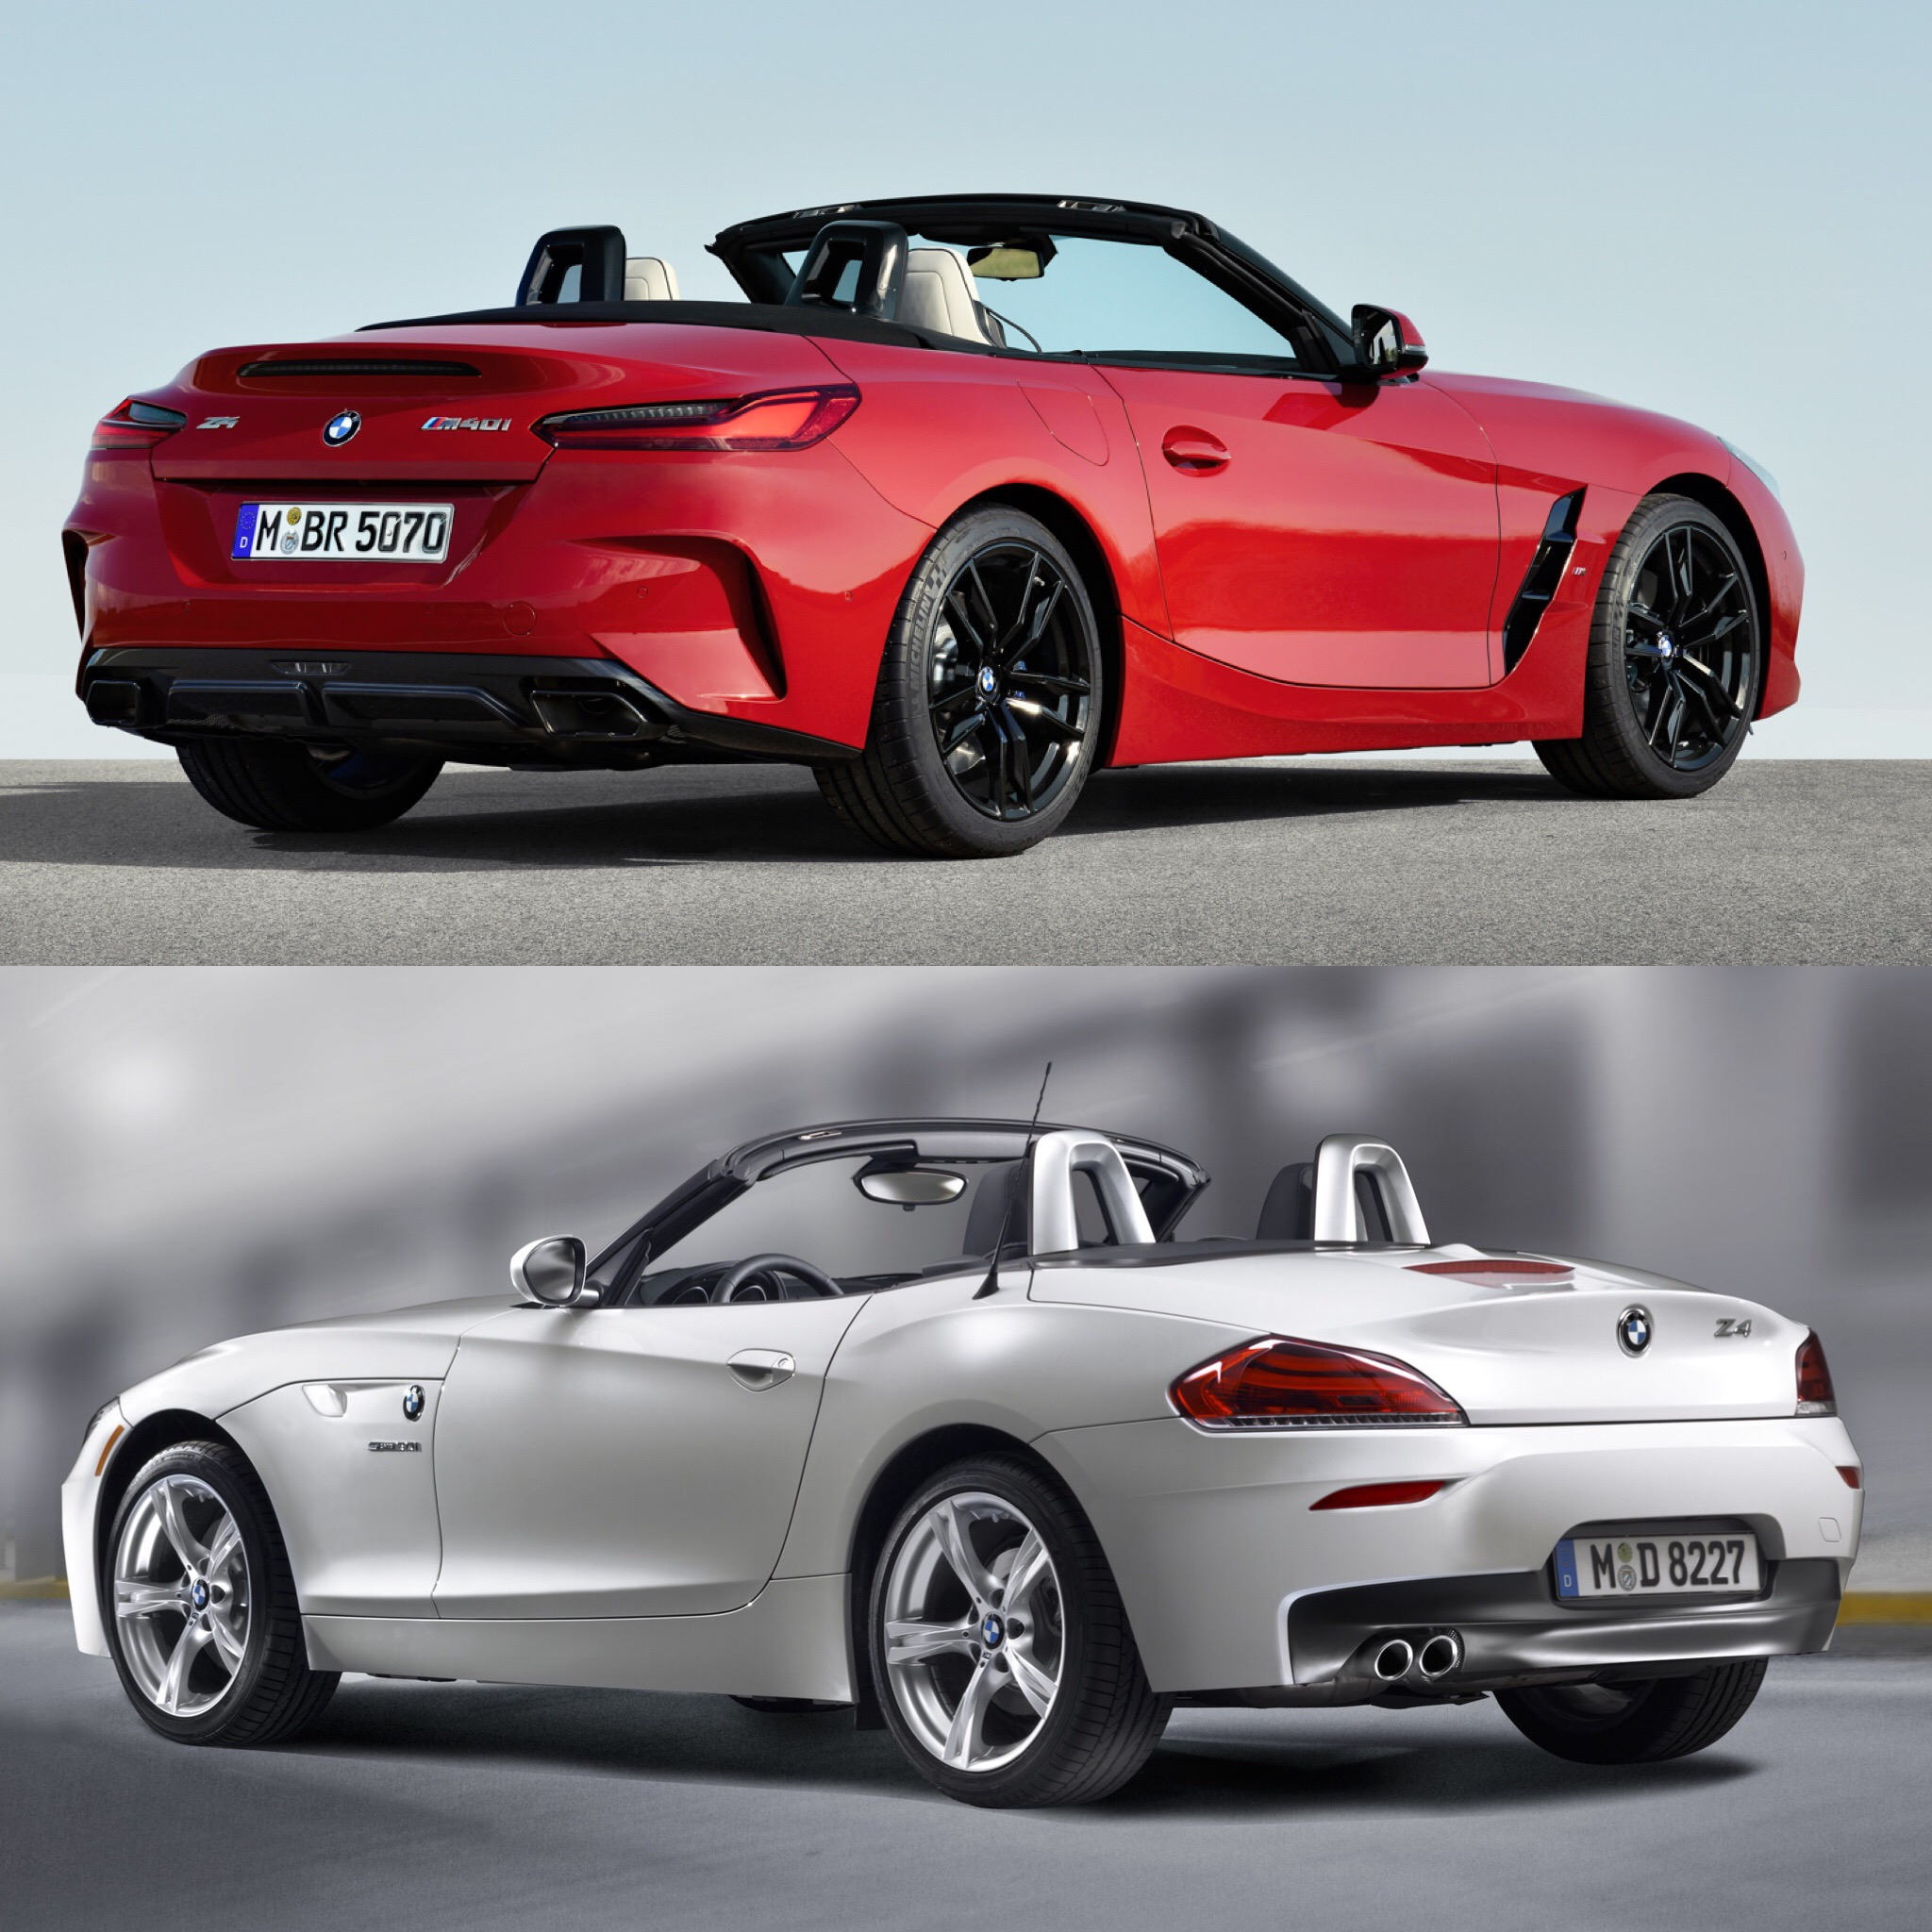 Bmw Z4 Reviews: Photo Comparison: G29 BMW Z4 Vs E89 BMW Z4